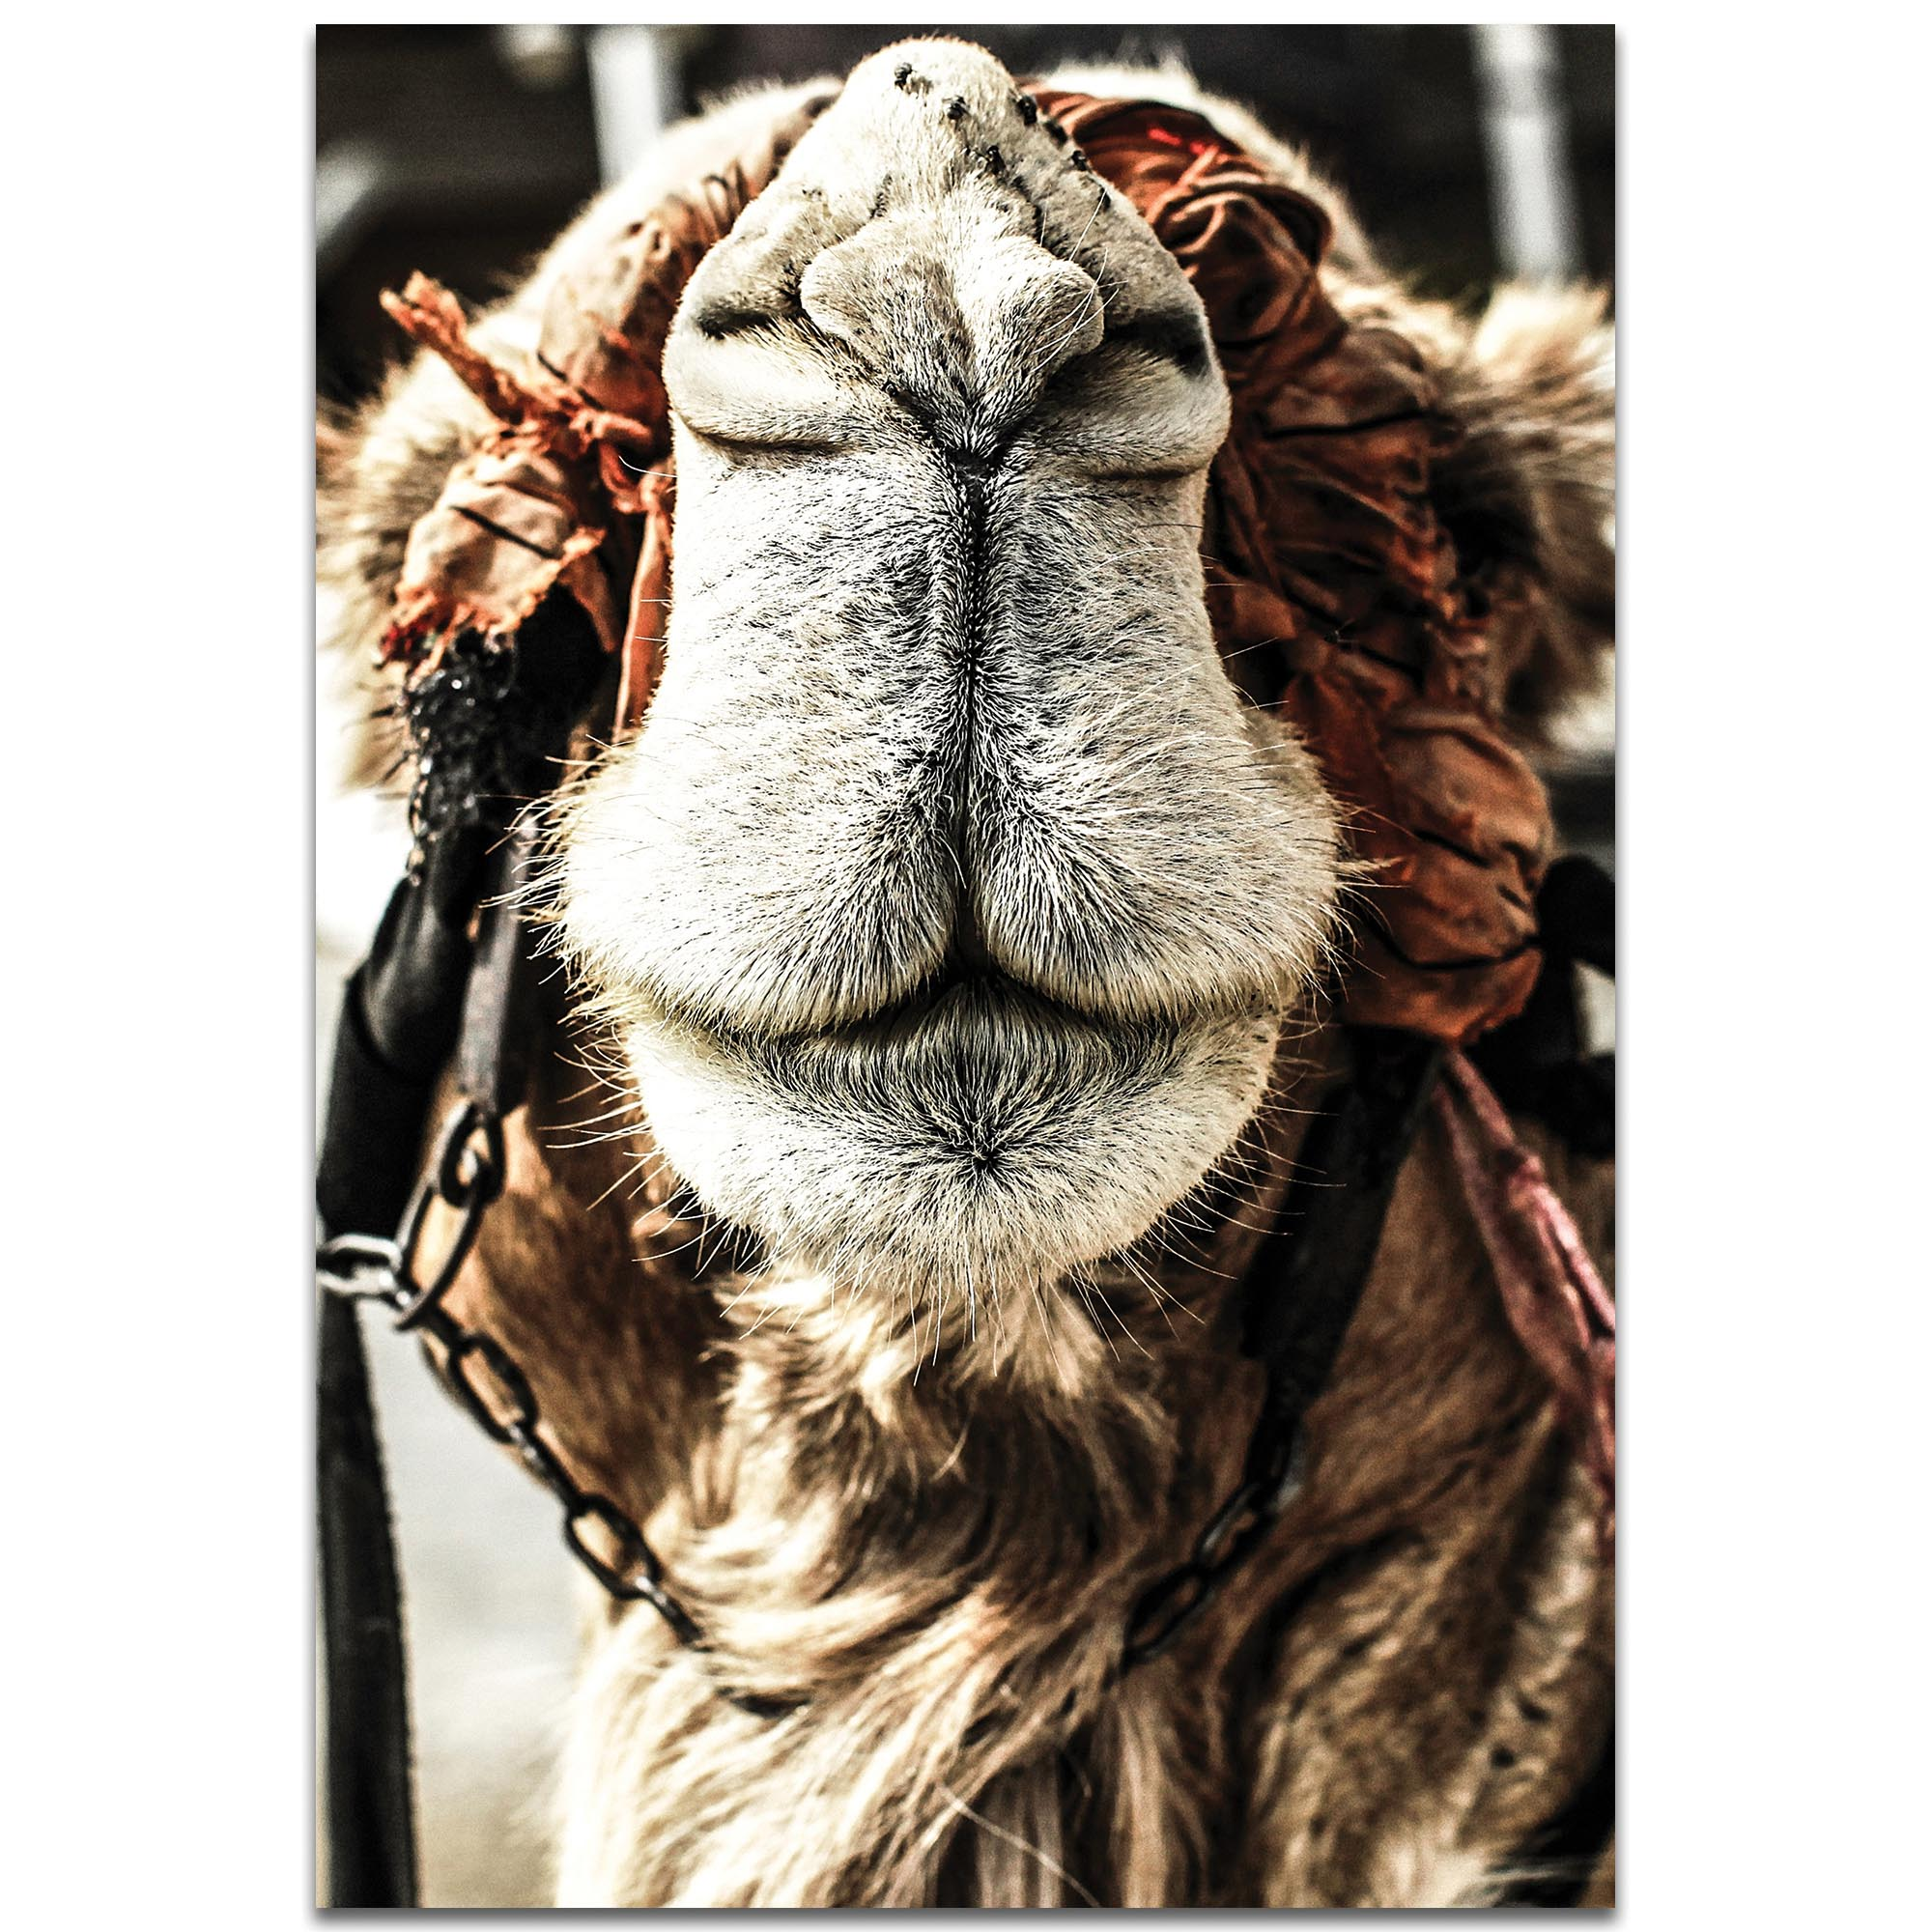 Casual Wall Art 'Camel Grin' - Wildlife Decor on Metal or Plexiglass